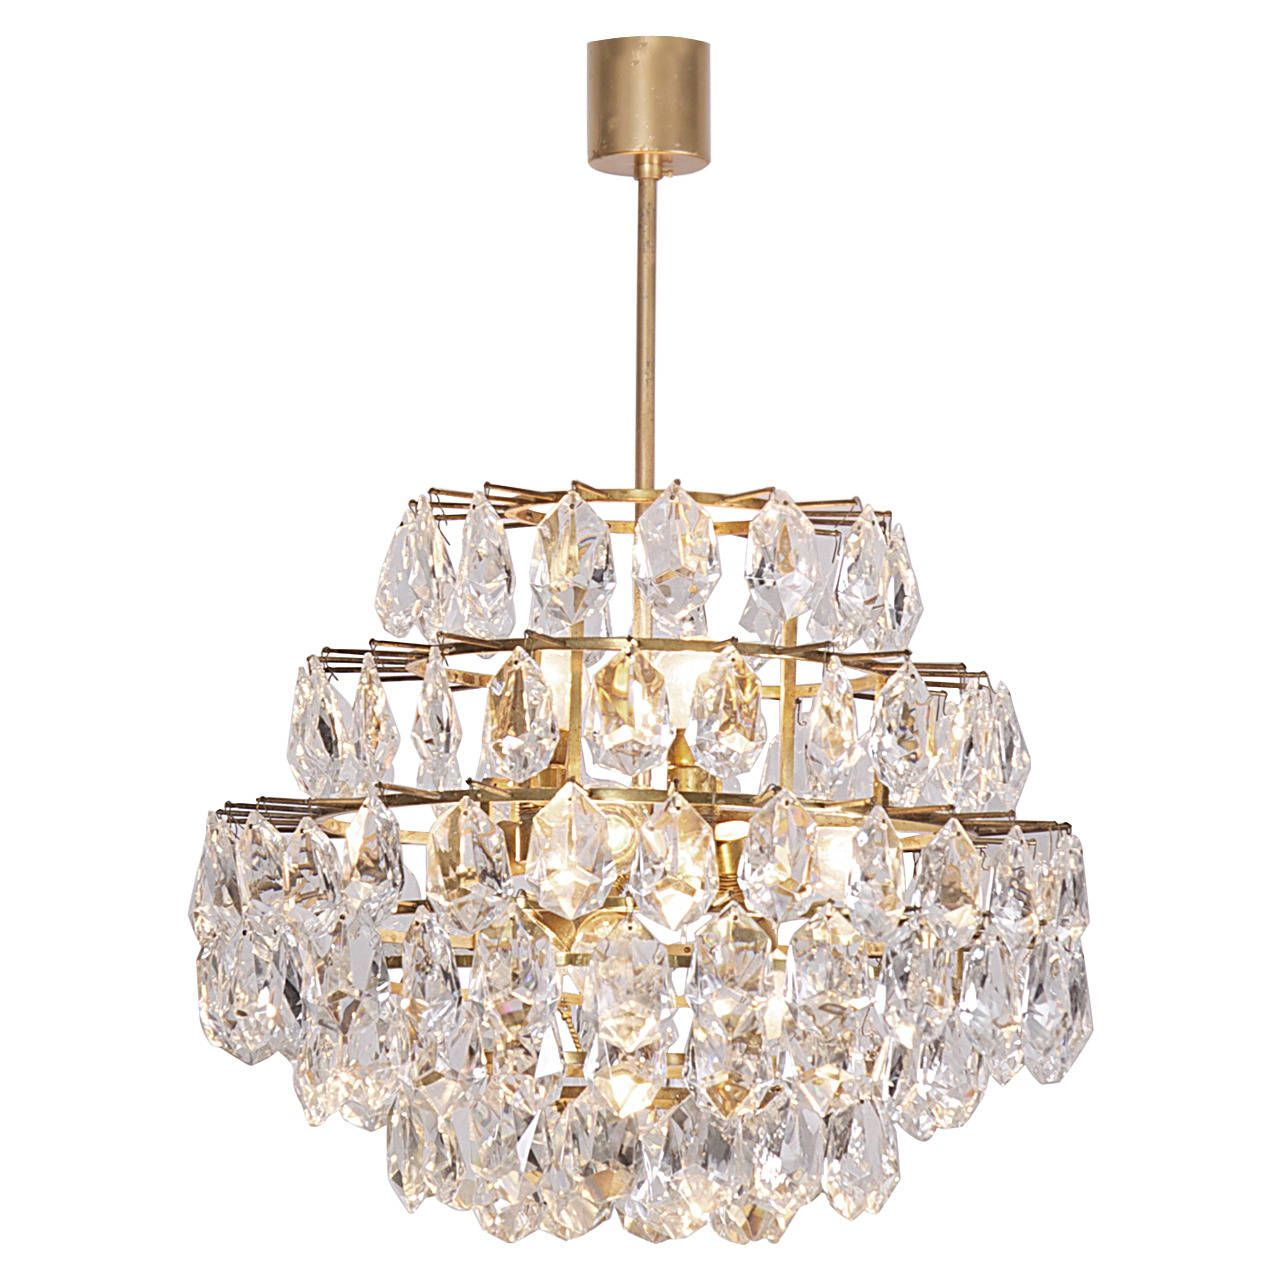 Stunning Seven-Tier Crystal Glass Bakalowits Chandelier | From a unique collection of antique and modern chandeliers and pendants at https://www.1stdibs.com/furniture/lighting/chandeliers-pendant-lights/